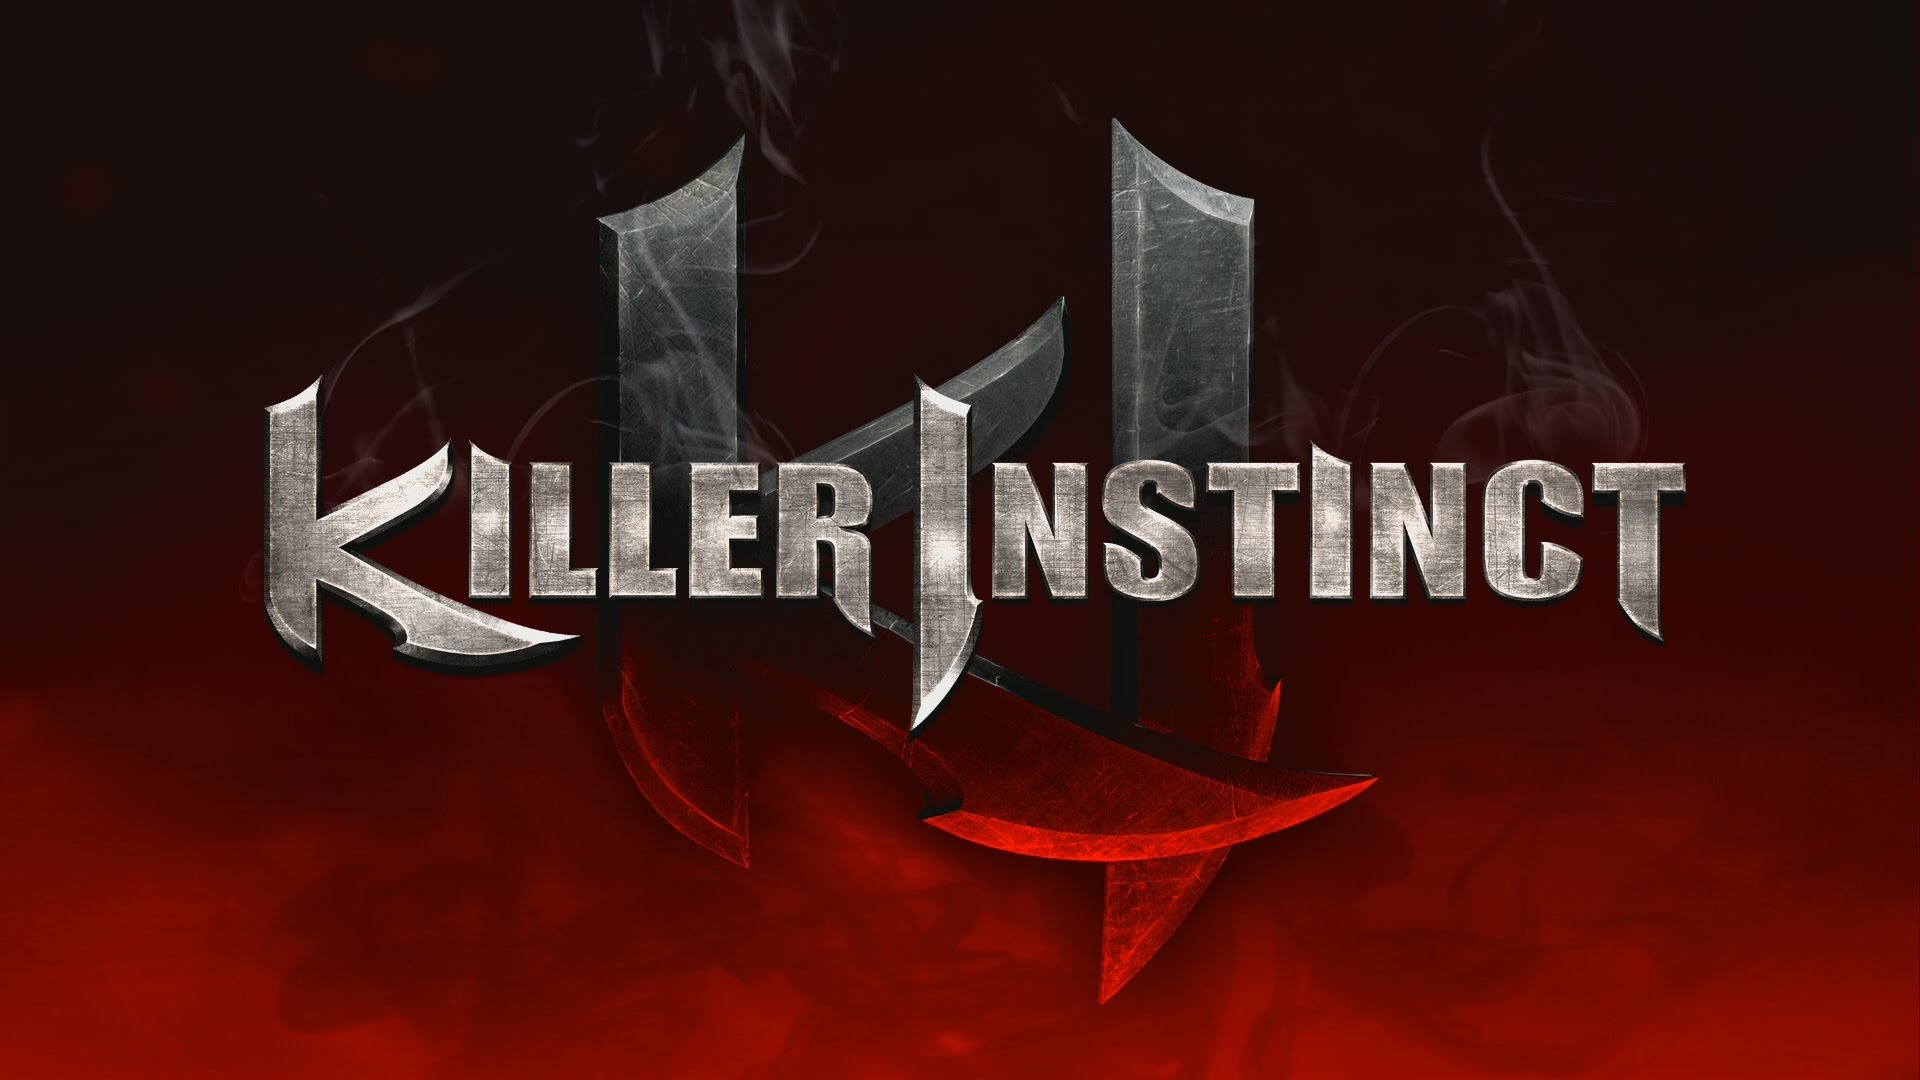 Killer Instinct is a series of fighting video games originally created by Rare and published by Midway and NintendoThe original Killer Instinct was released for arcades in 1994 It was then released for the Super Nintendo and Game Boy in 1995 Its popularity led to a sequel Killer Instinct 2 released in 1996 The series was later rebooted and released on the Xbox One in 2013 with the release